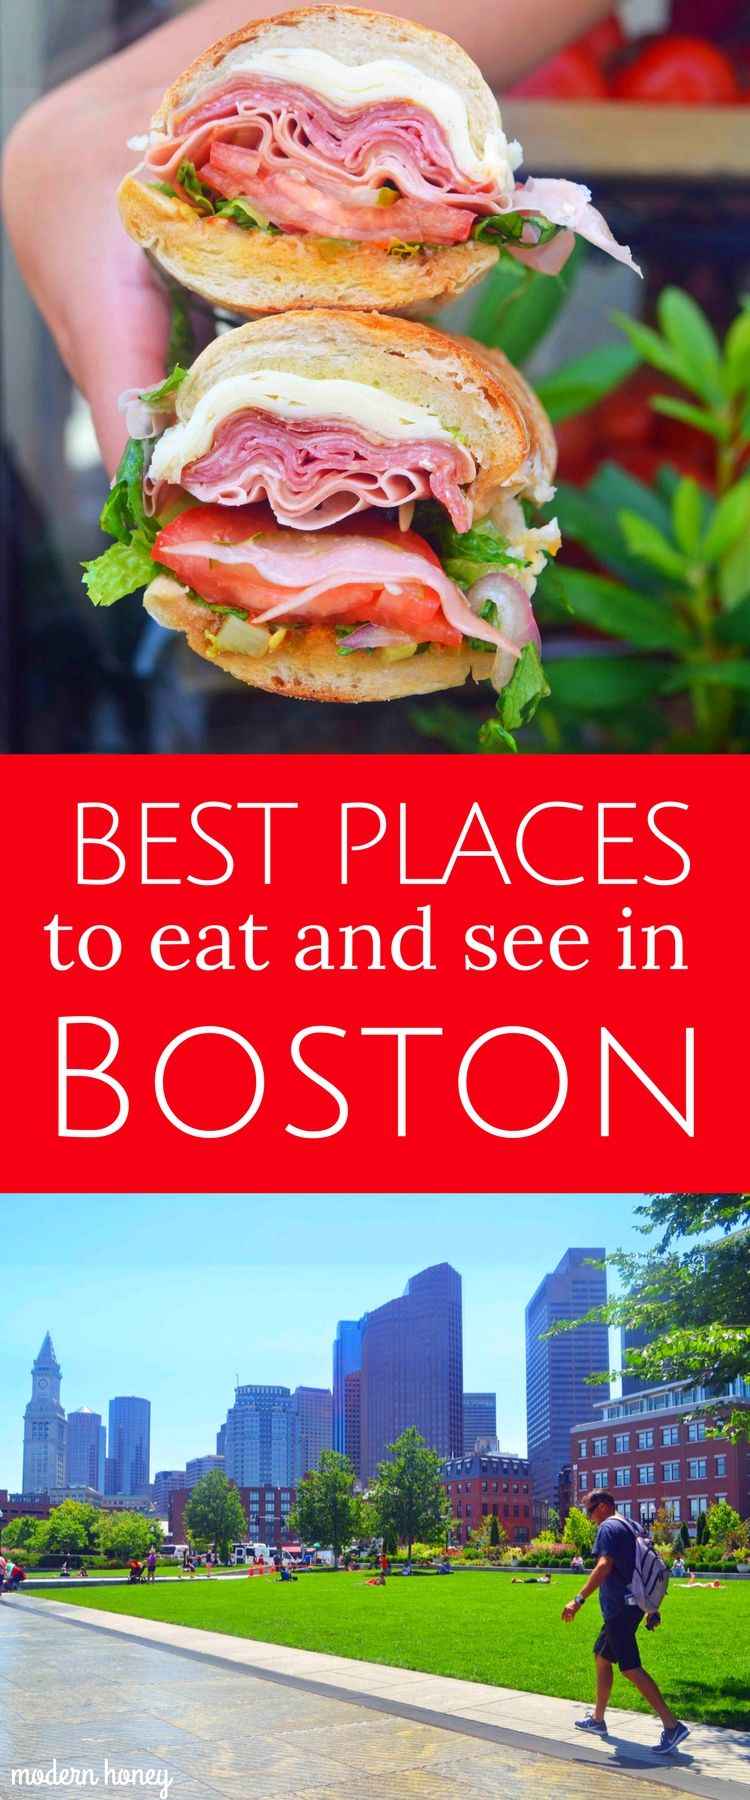 Best Places to Eat and See in Boston. A comprehensive list of the most popular things to do in Boston and the best restaurants in Boston. Tips on transportation, weather, food, and entertainment. and how to plan a perfect vacation to Boston. www.modernhoney.com